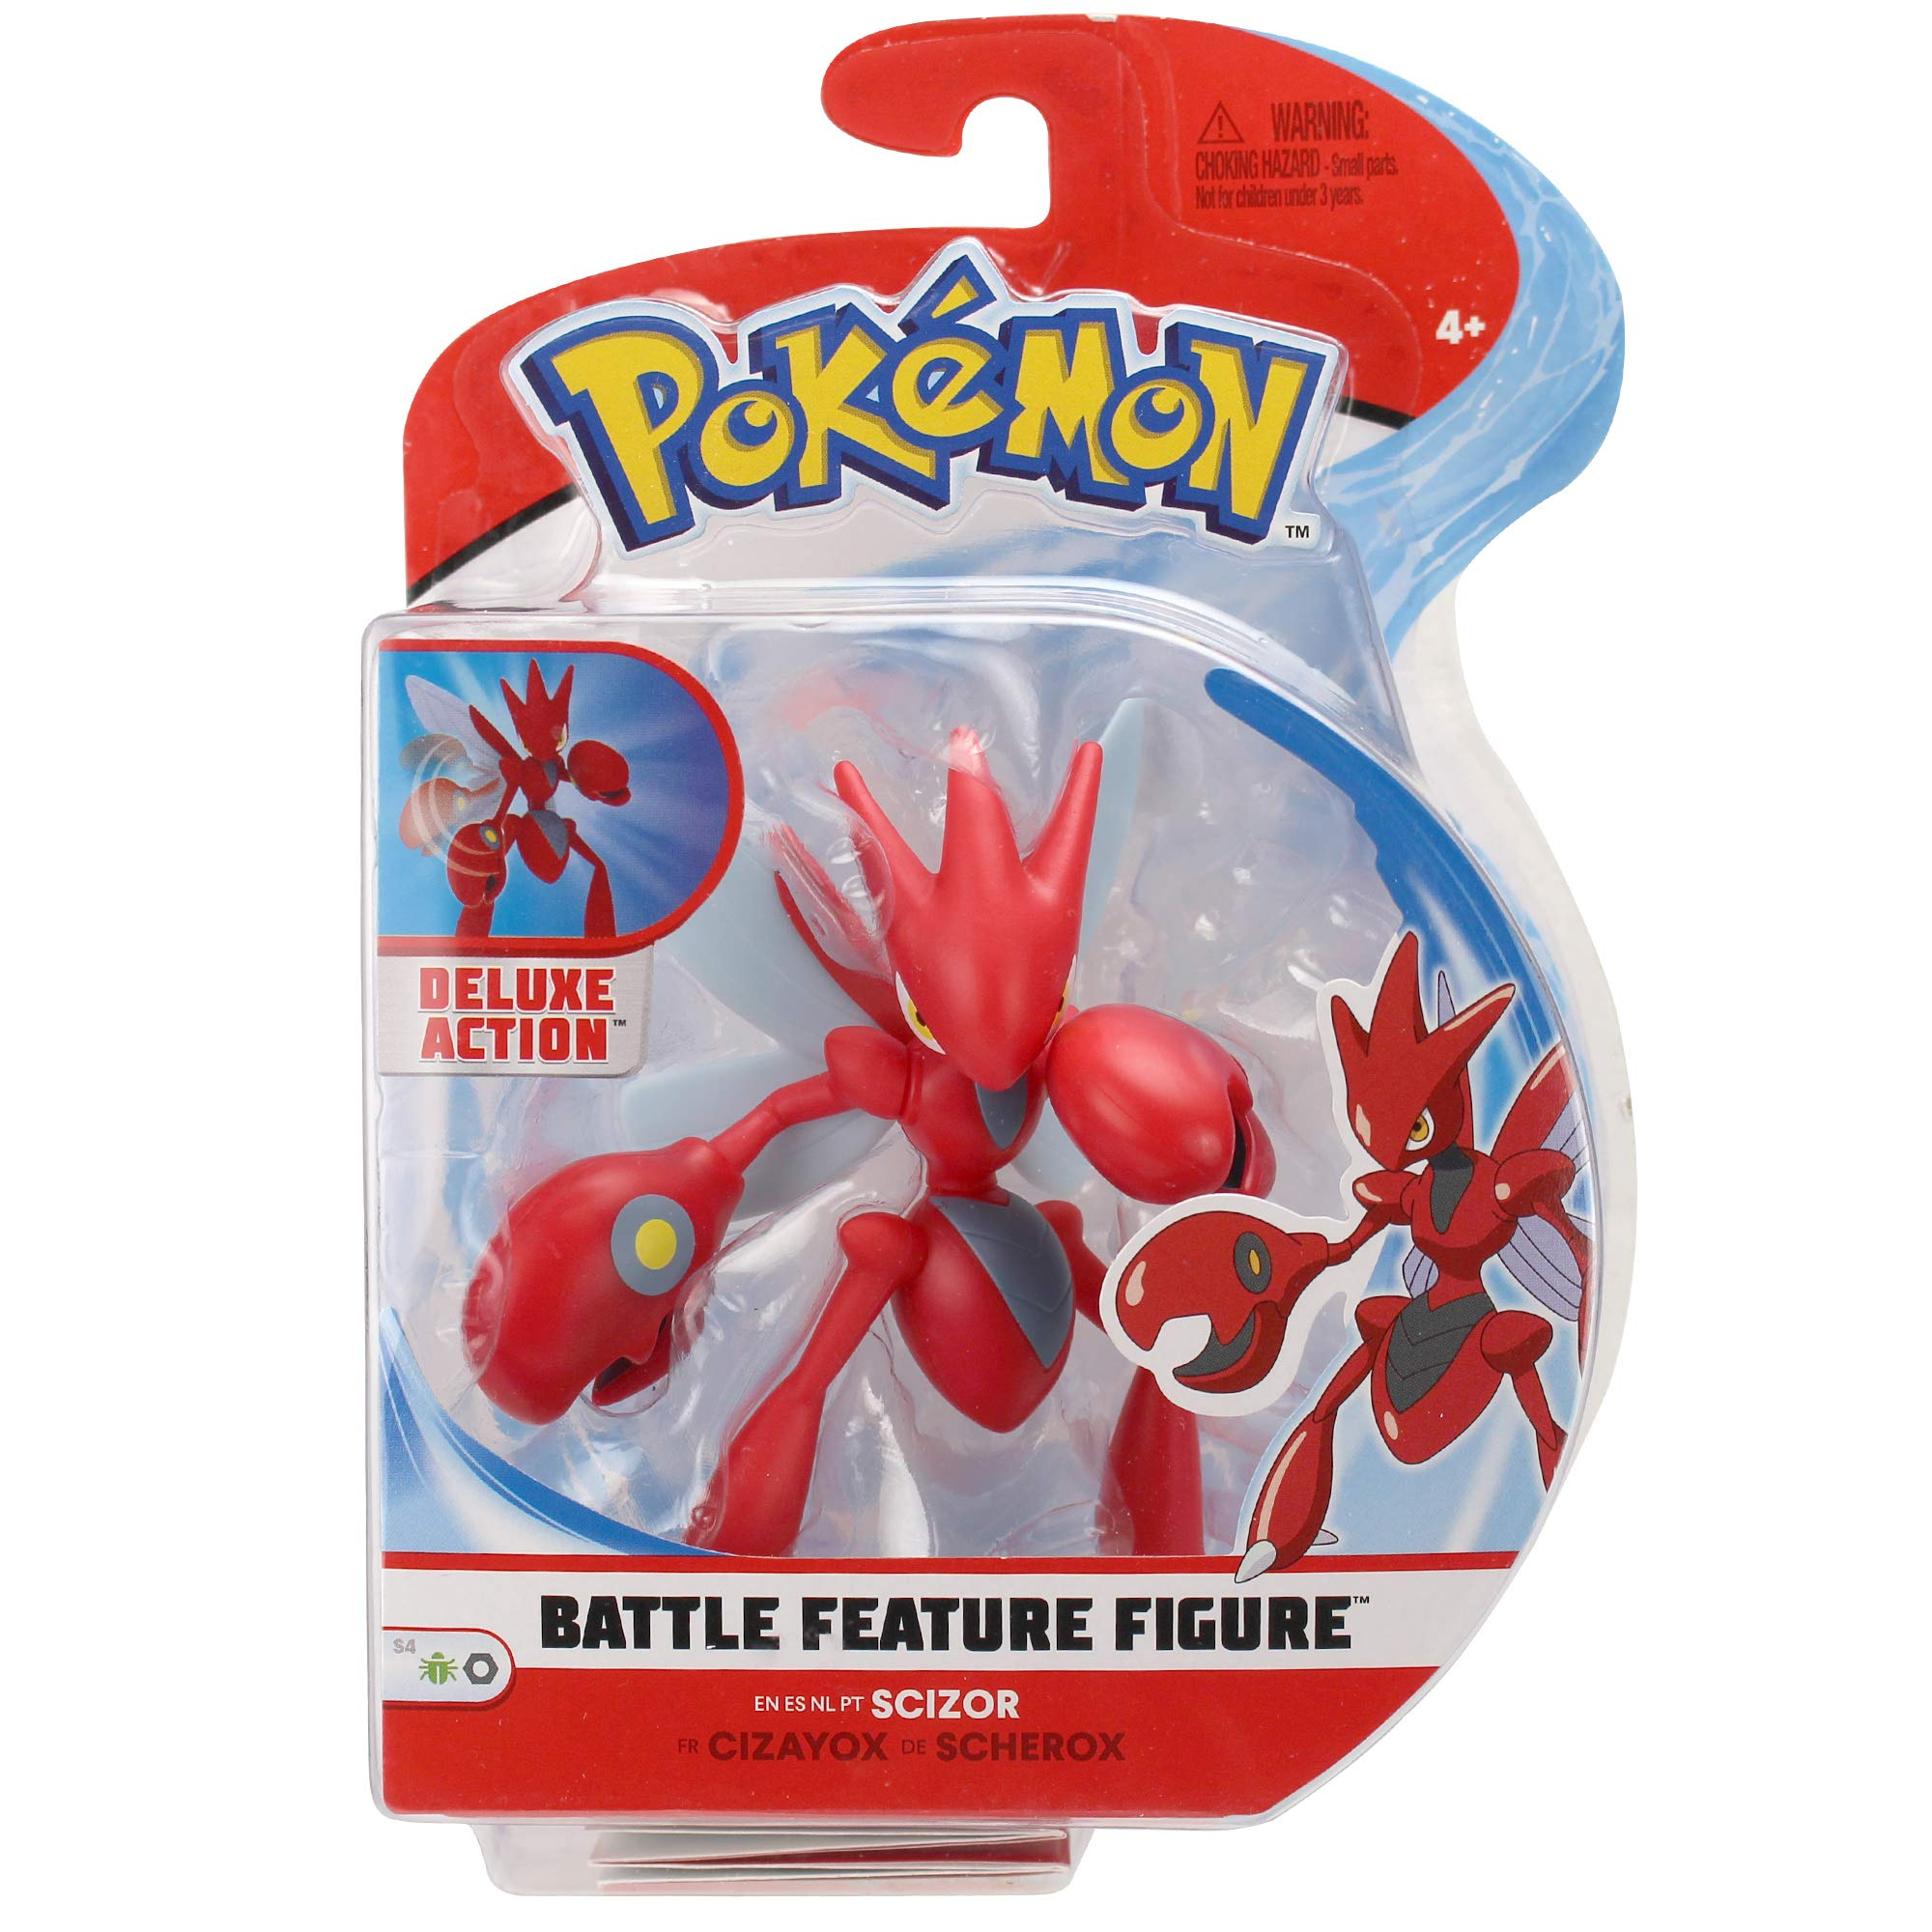 PoKéMoN Feature Figure | Scizor | 11,5 CM | Authentic Details & Dynamic Battle Features